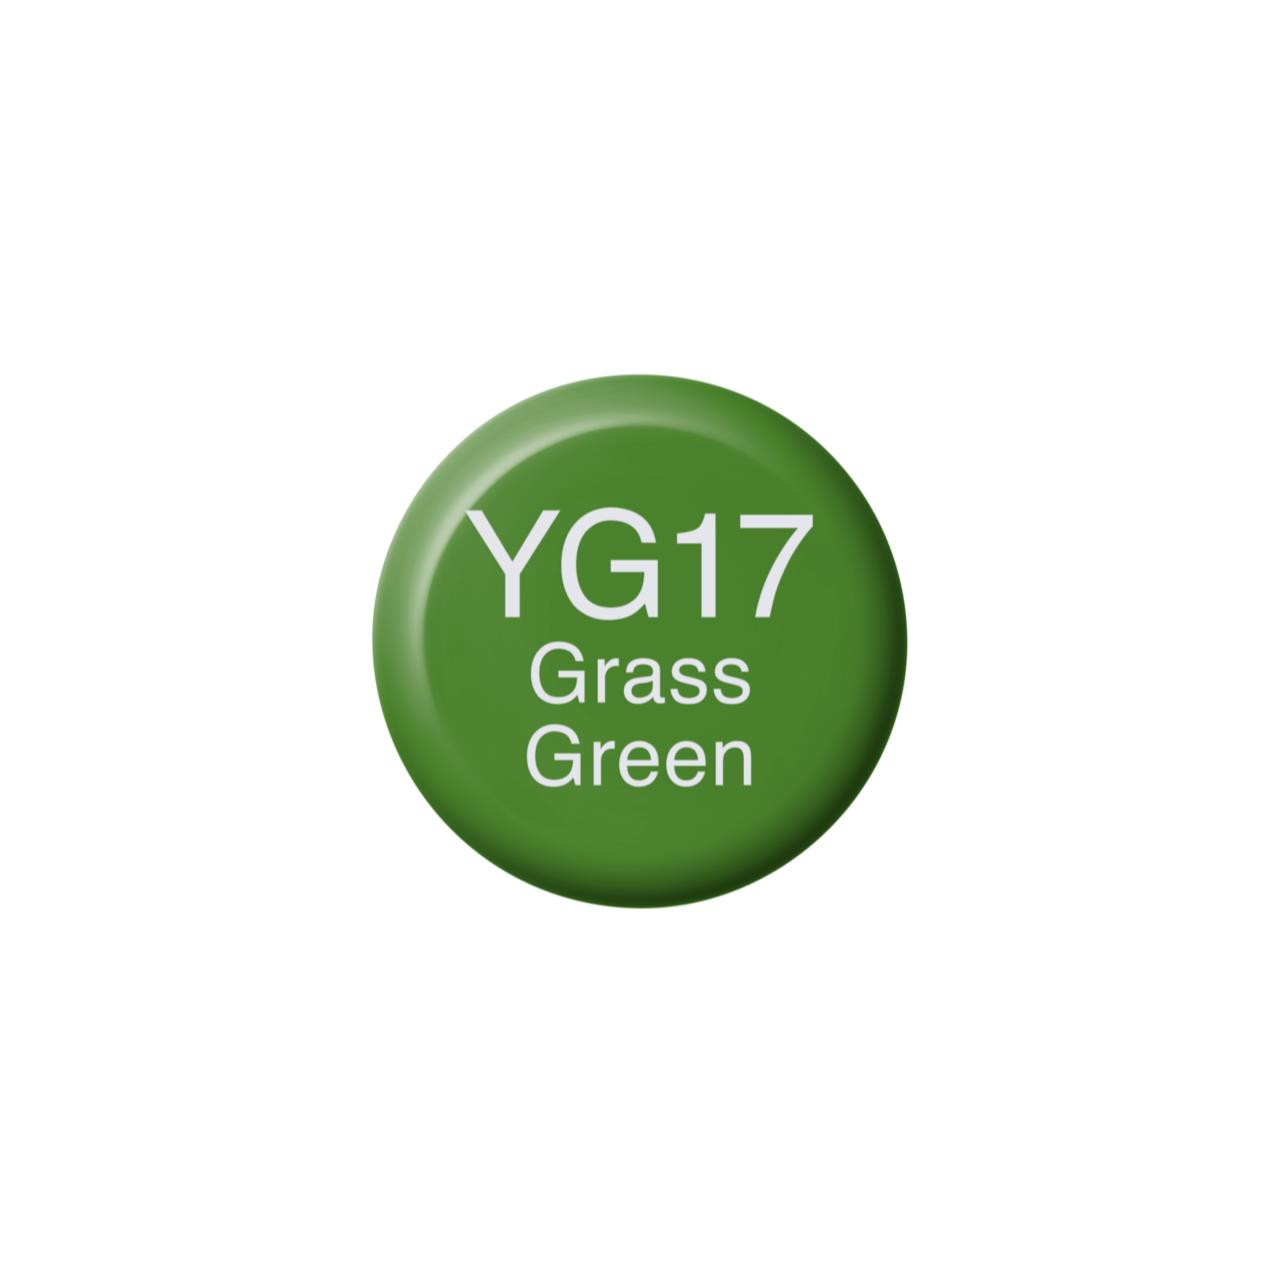 YG17 Grass Green, Copic Ink - 4511338058435